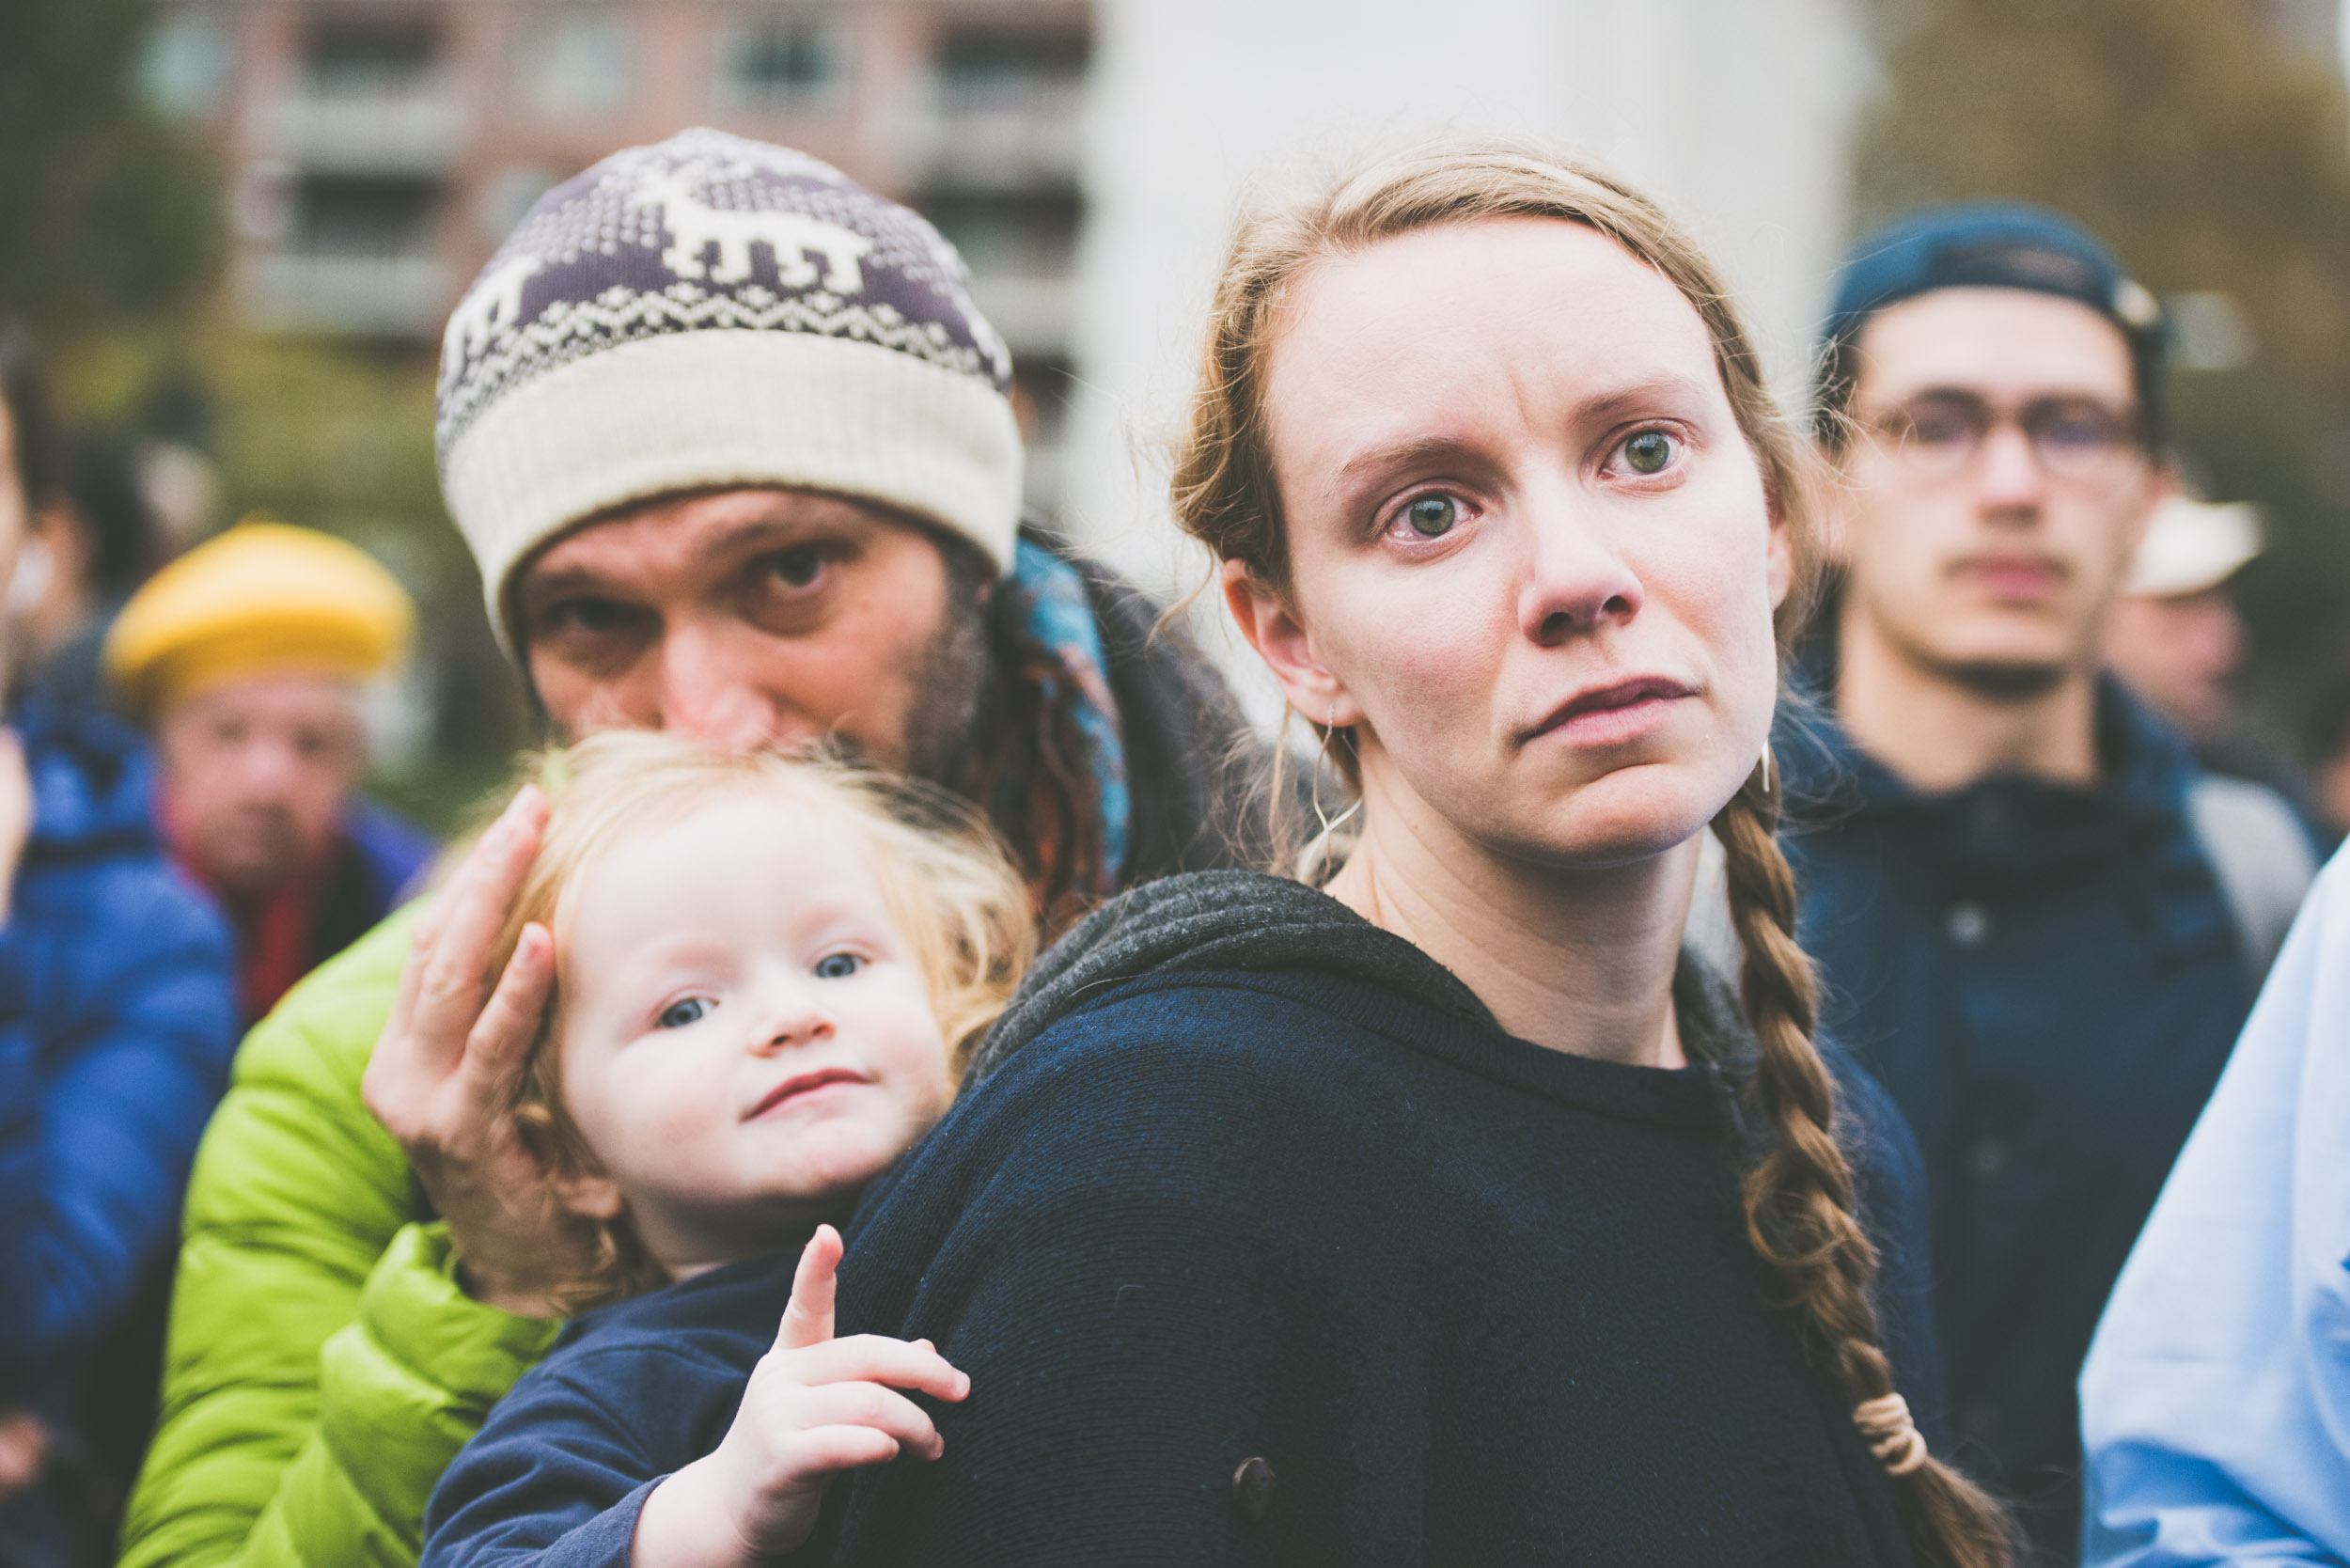 Upset family - Festivals and protests - Photo credit Nicola Bailey.jpg